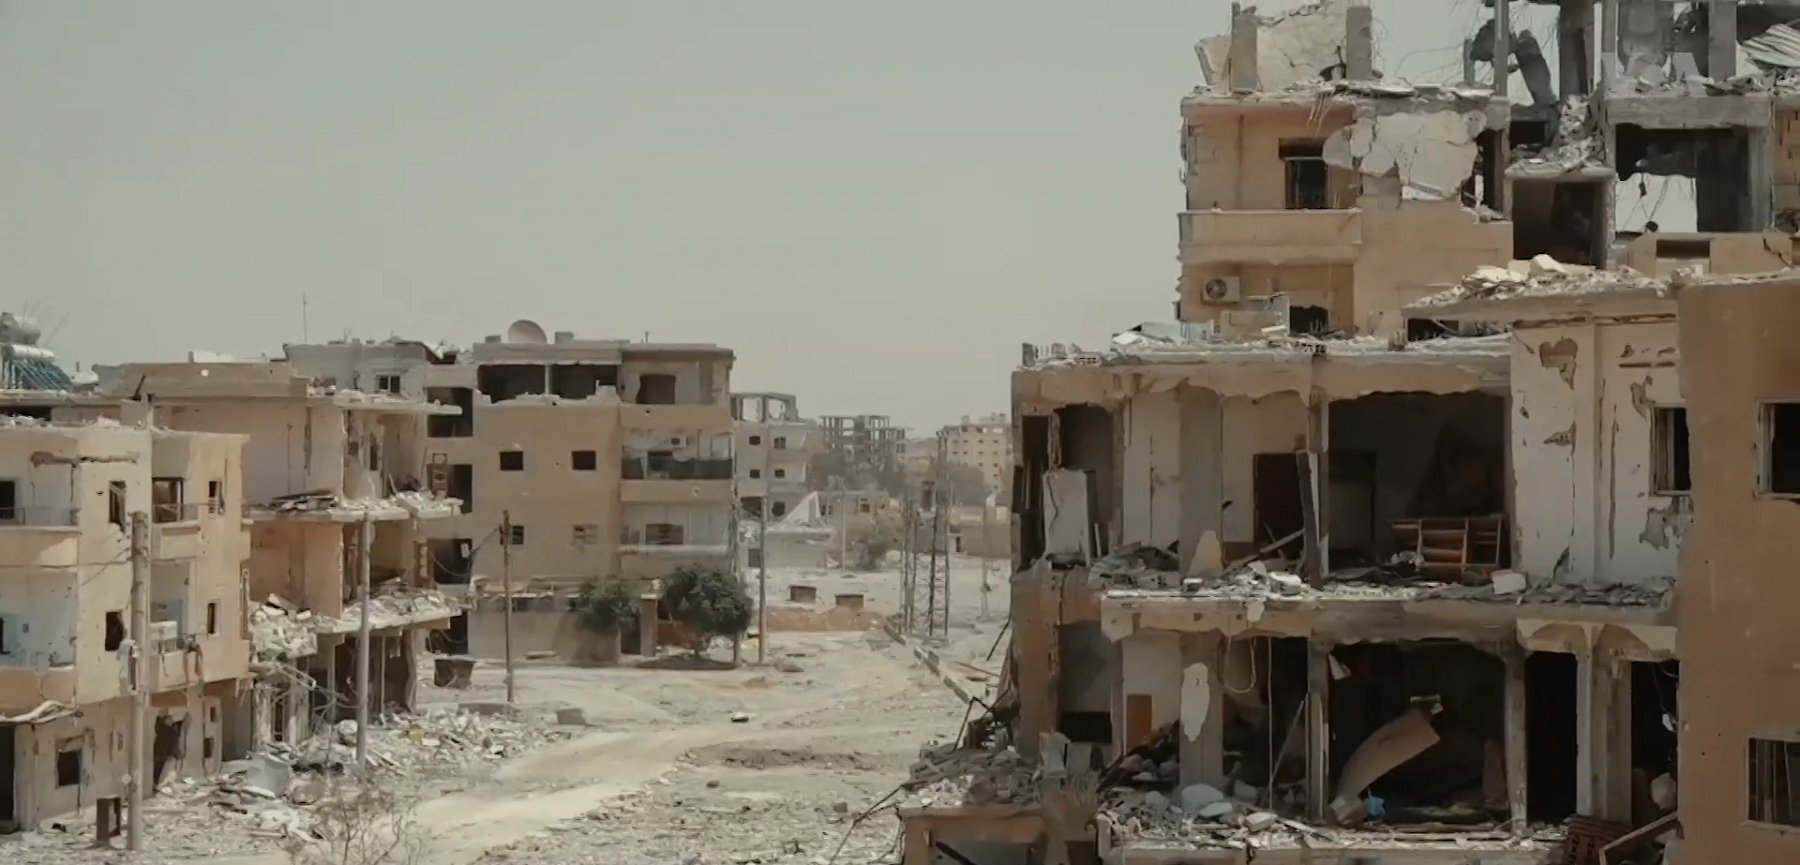 Destroyed Neighborhood in Syria